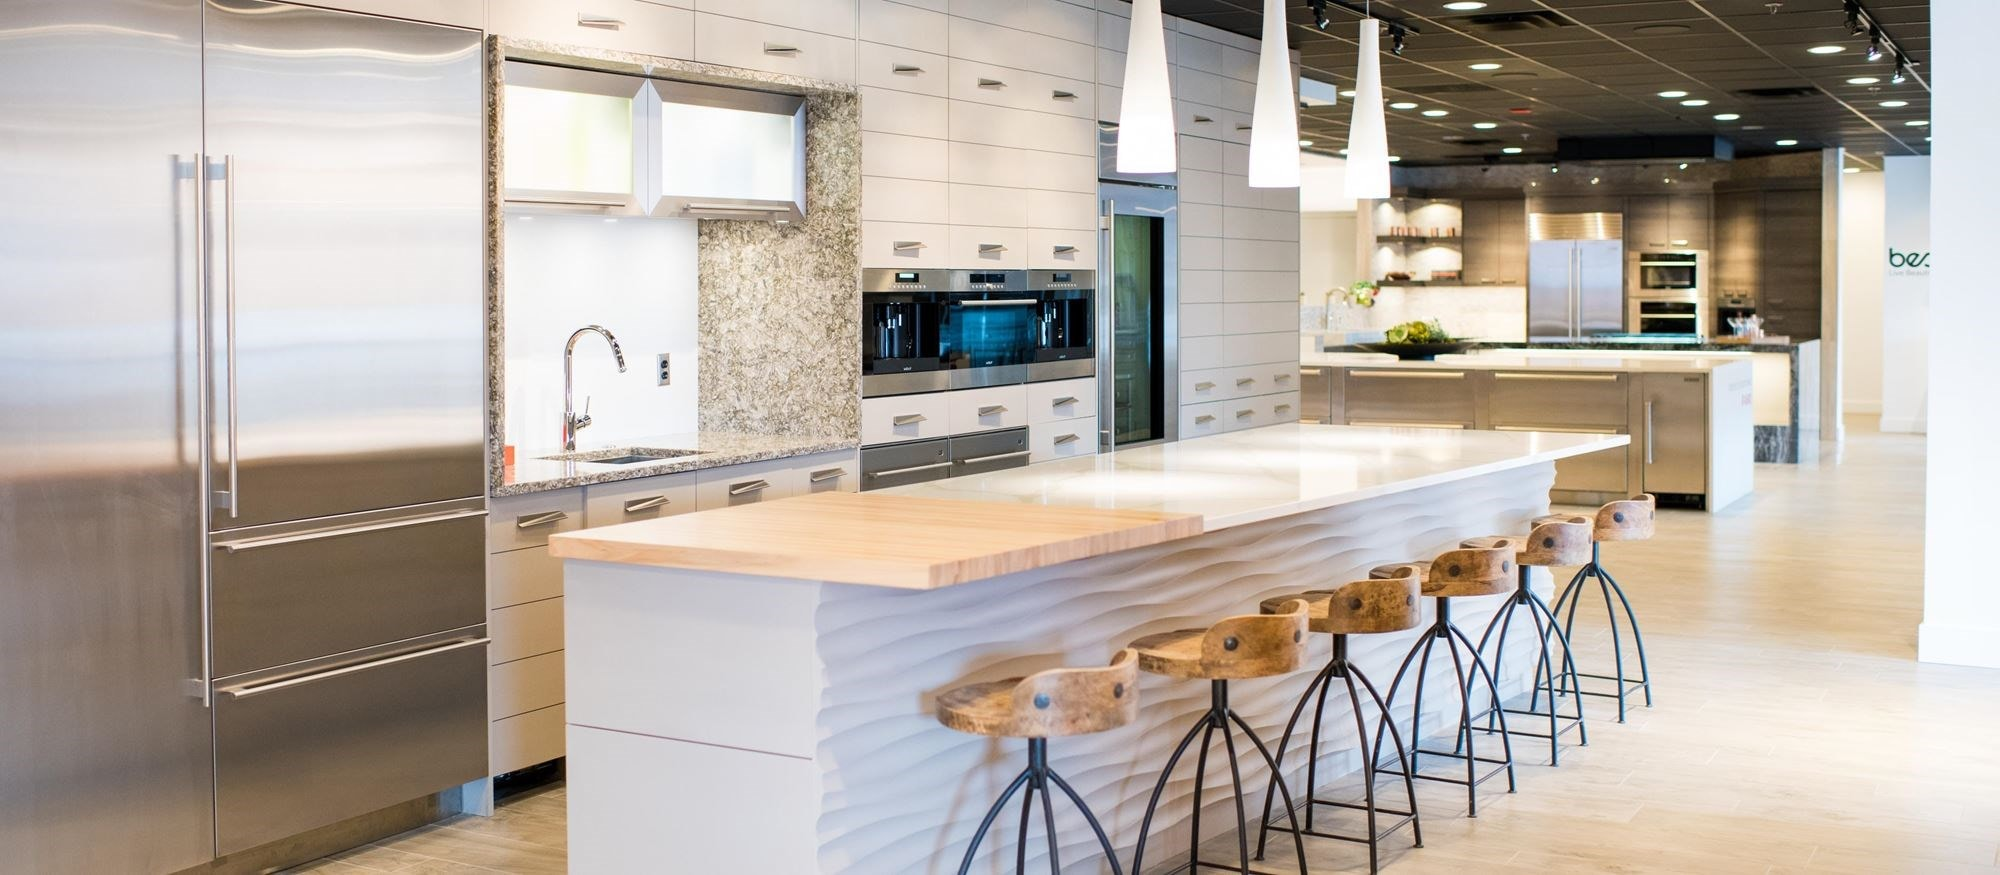 Choose the best combination of appliances with a personal consultation at Sub-Zero, Wolf and Cove Showroom in Salt Lake City, Utah